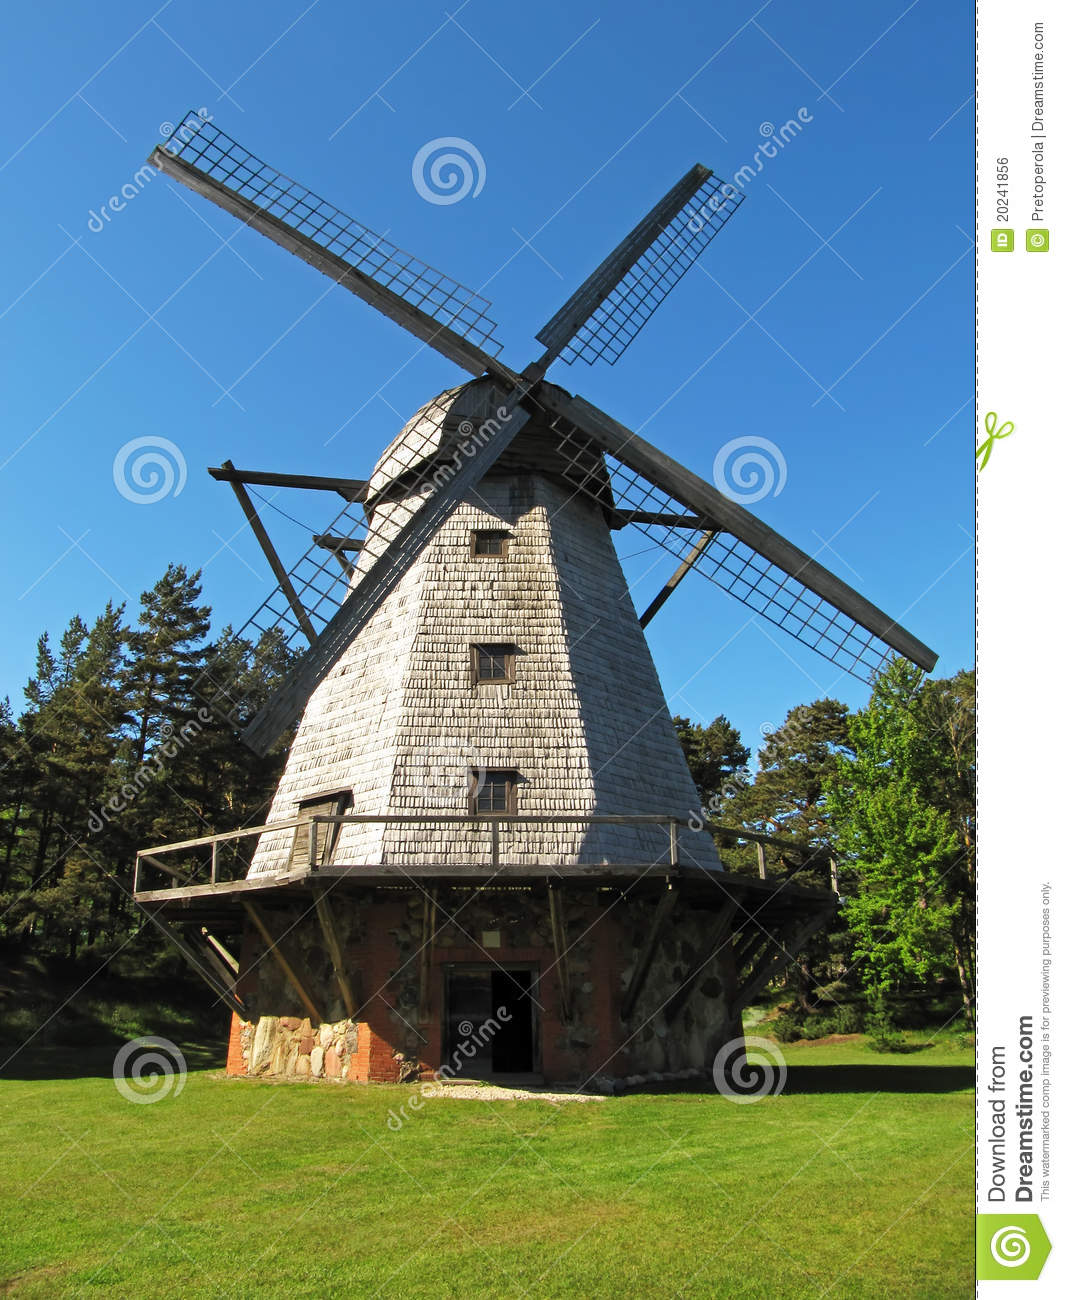 Old Windmill Royalty Free Stock Image - Image: 20241856